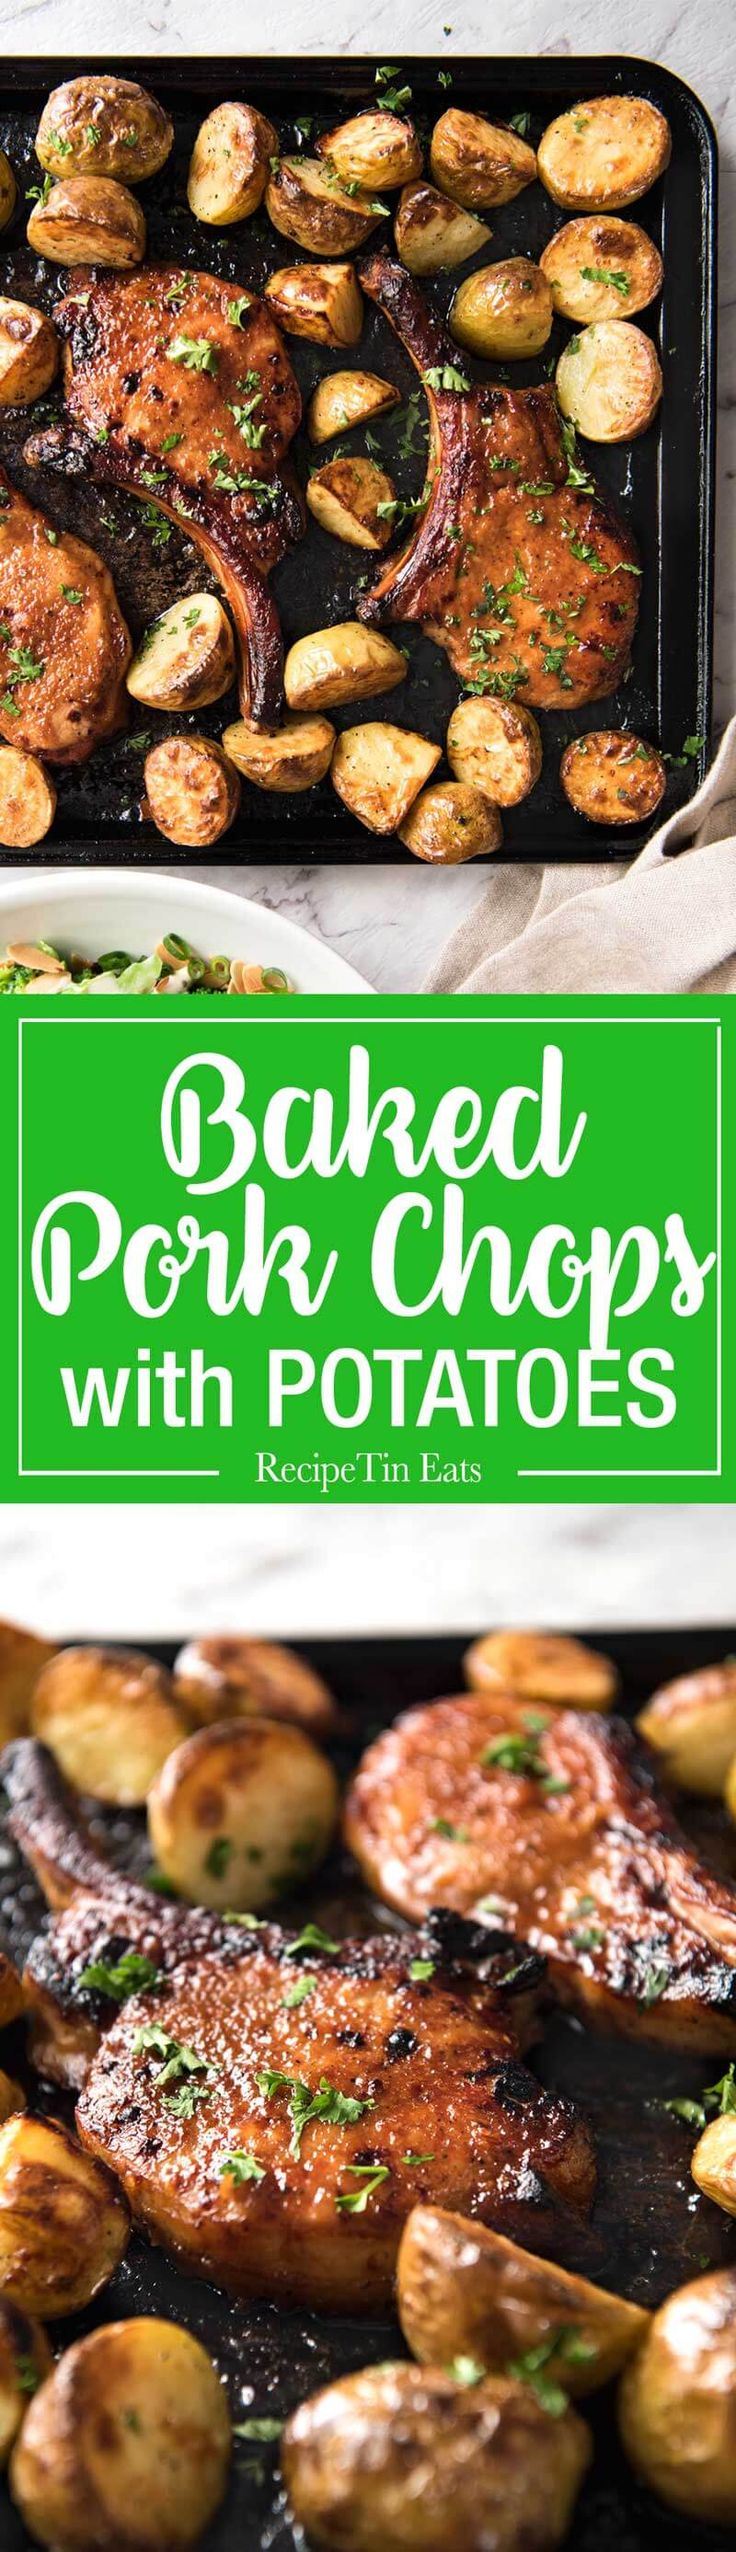 These oven baked pork chops are slathered in a tasty country-style rub then…